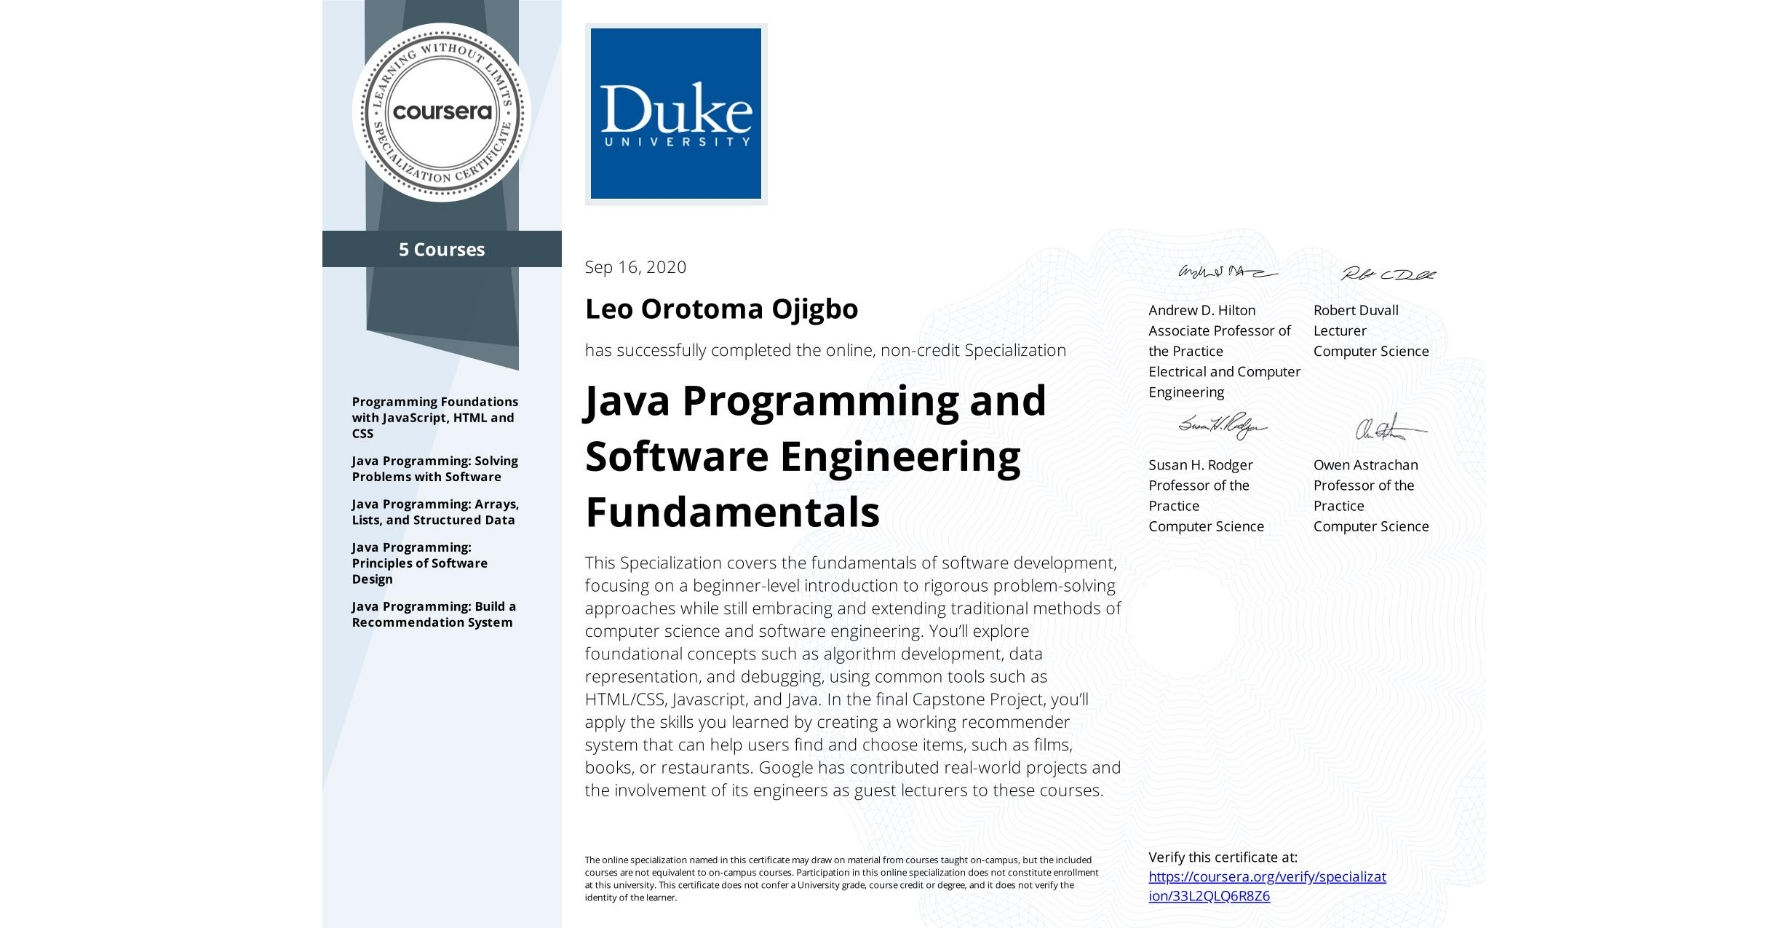 View certificate for Leo Orotoma Ojigbo, Java Programming and Software Engineering Fundamentals, offered through Coursera. This Specialization covers the fundamentals of software development, focusing on a beginner-level introduction to rigorous problem-solving approaches while still embracing and extending traditional methods of computer science and software engineering. You'll explore foundational concepts such as algorithm development, data representation, and debugging, using common tools such as HTML/CSS, Javascript, and Java. In the final Capstone Project, you'll apply the skills you learned by creating a working recommender system that can help users find and choose items, such as films, books, or restaurants. Google has contributed real-world projects and the involvement of its engineers as guest lecturers to these courses.